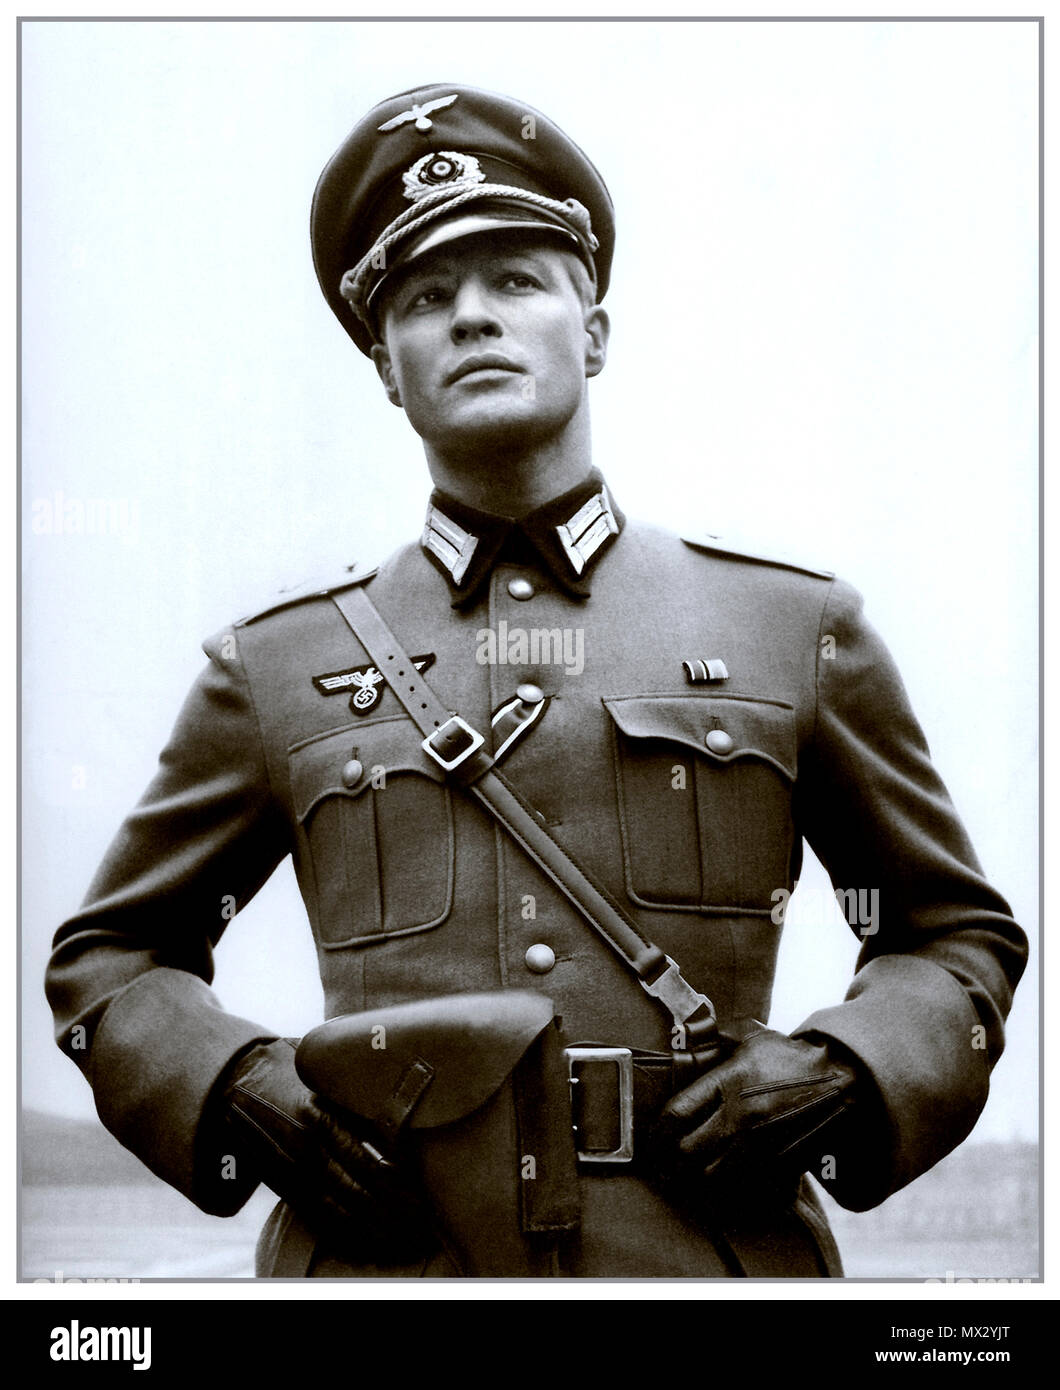 Vintage B&W film still image of Marlon Brando in Nazi military uniform starring in The Young Lions a 1958 Twentieth Century Fox movie film directed by Edward Dmytryk American-Canadian film director - Stock Image